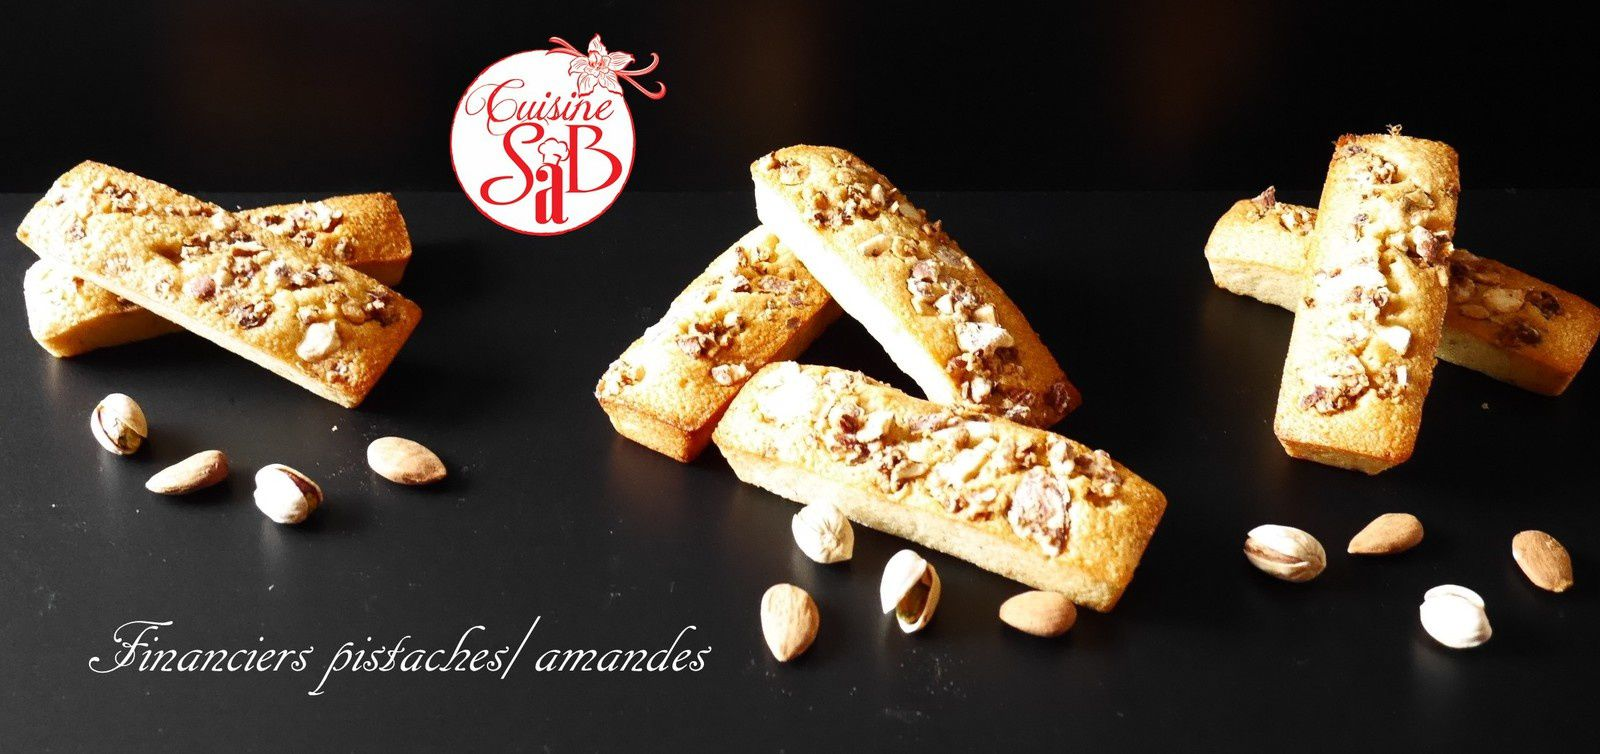 Financiers pistaches/amandes